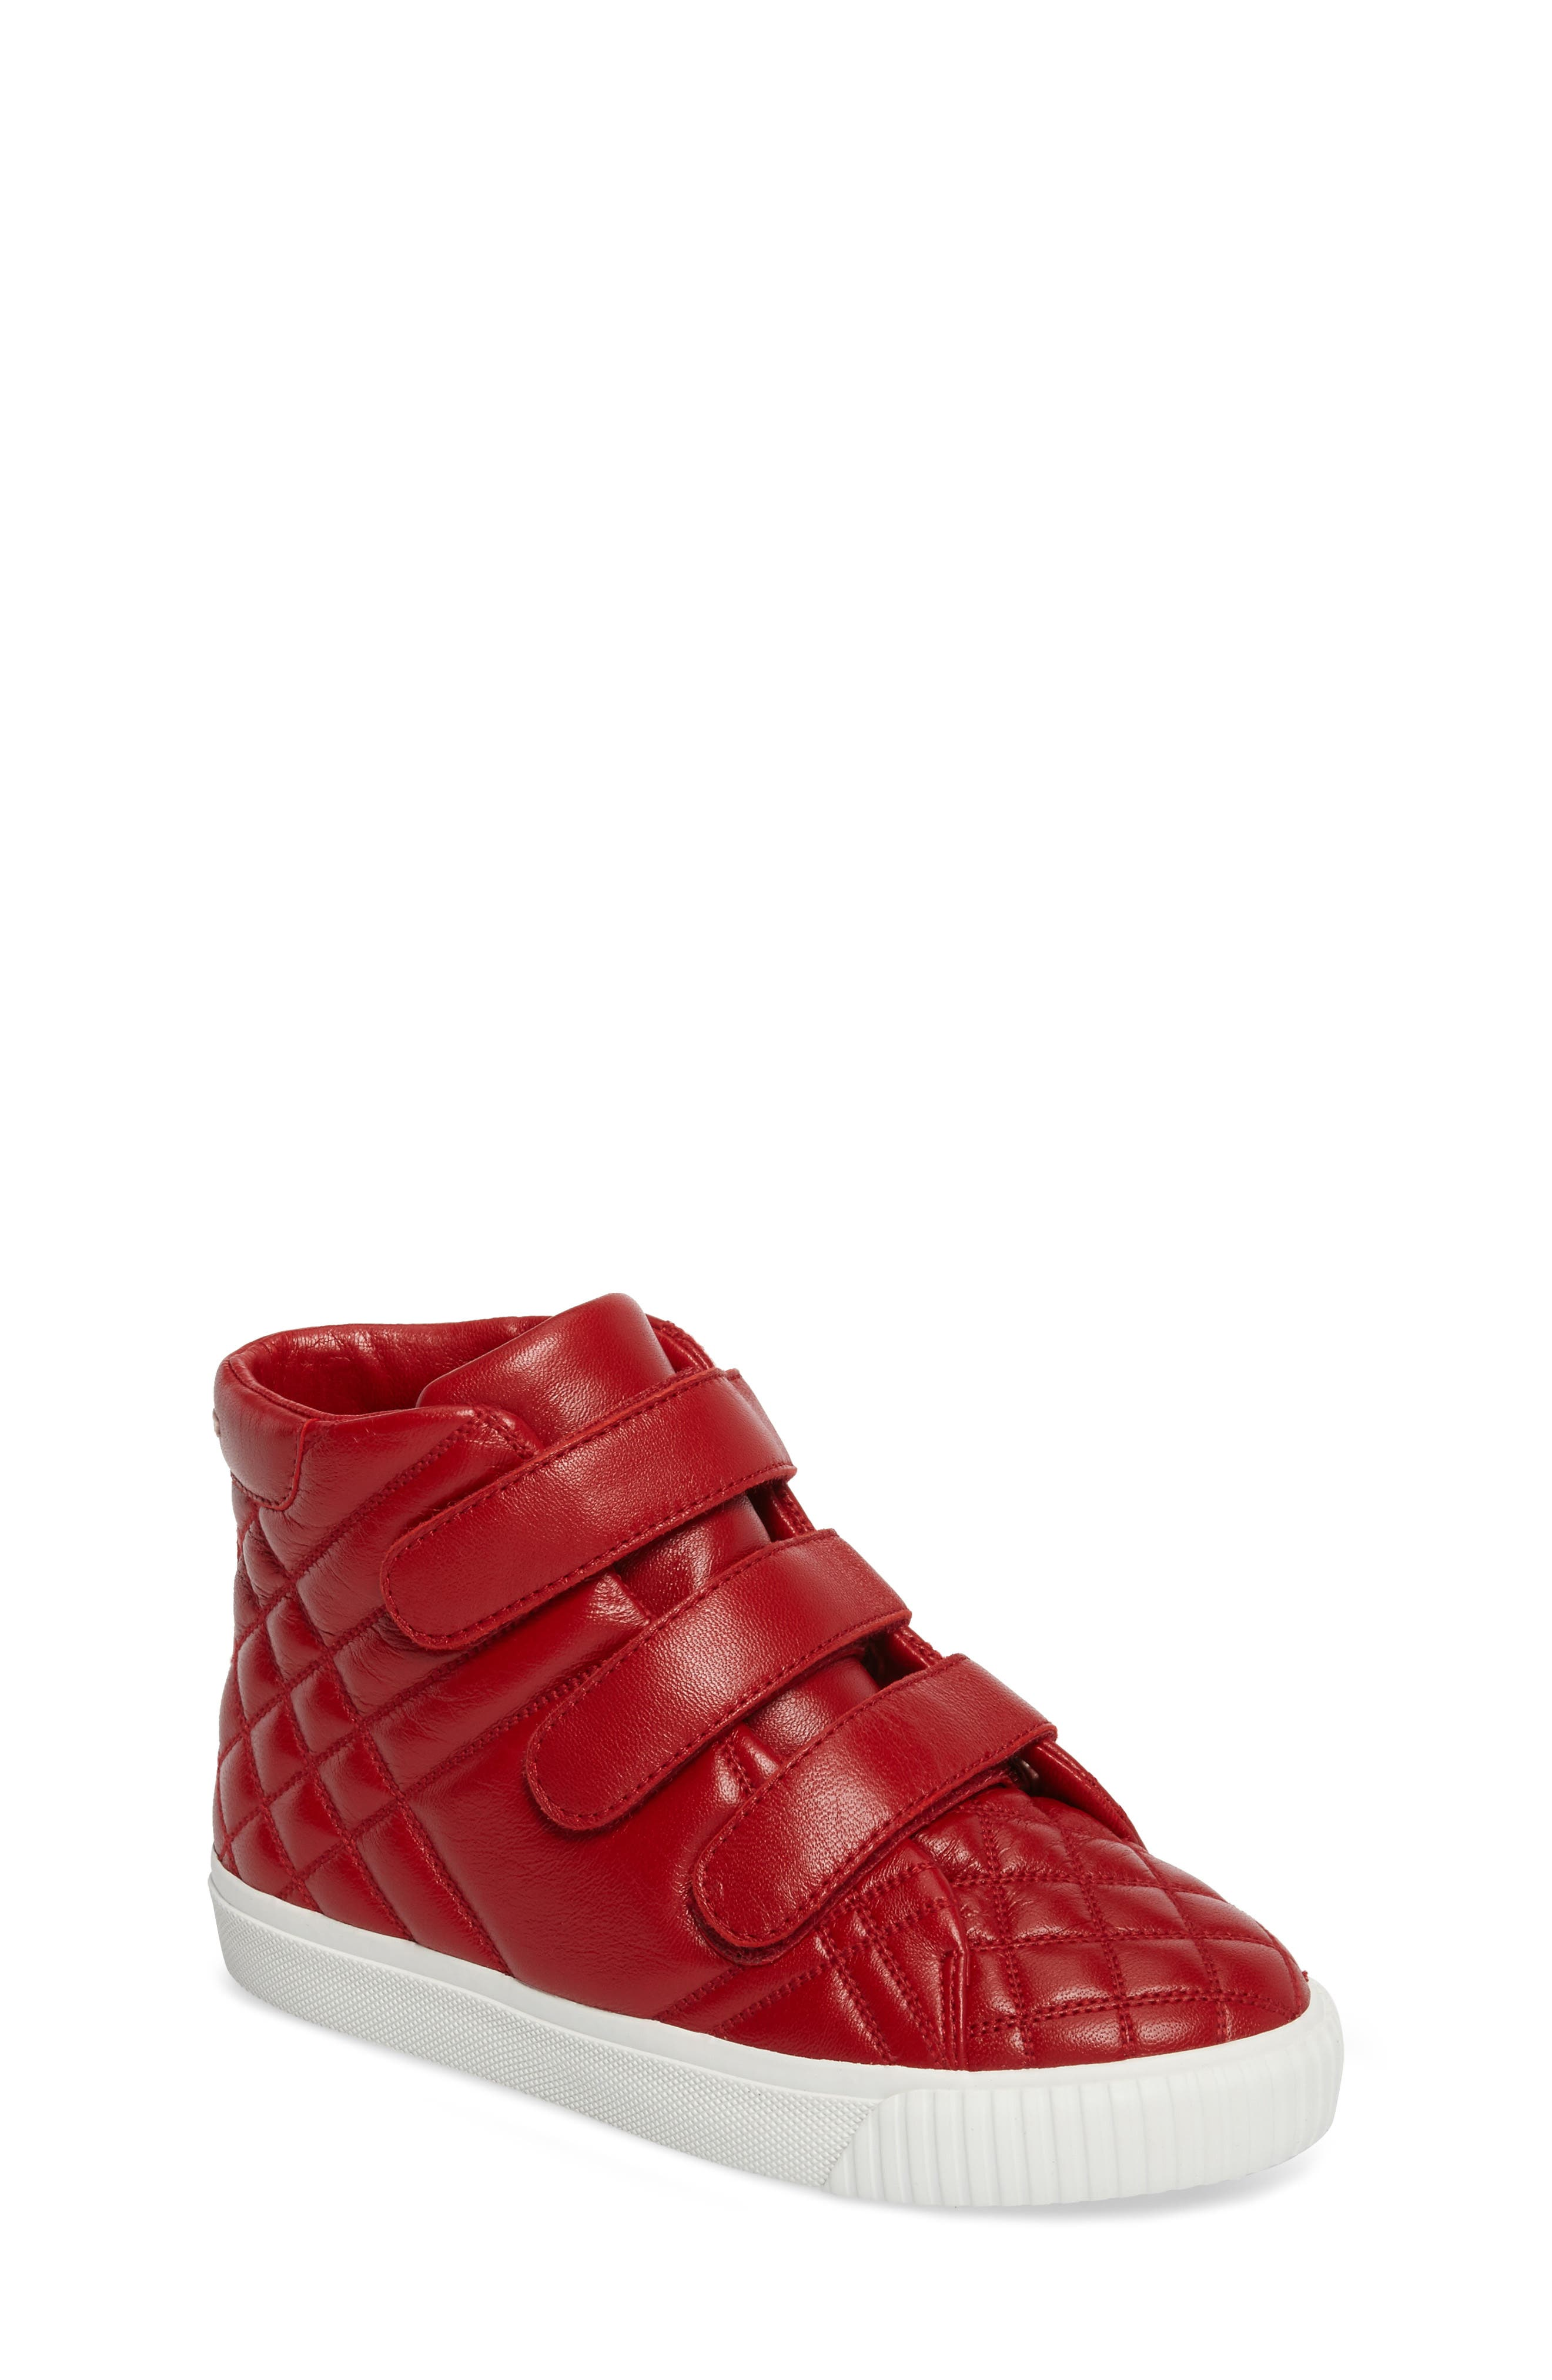 Sturrock Quilted High Top Sneaker,                             Main thumbnail 2, color,